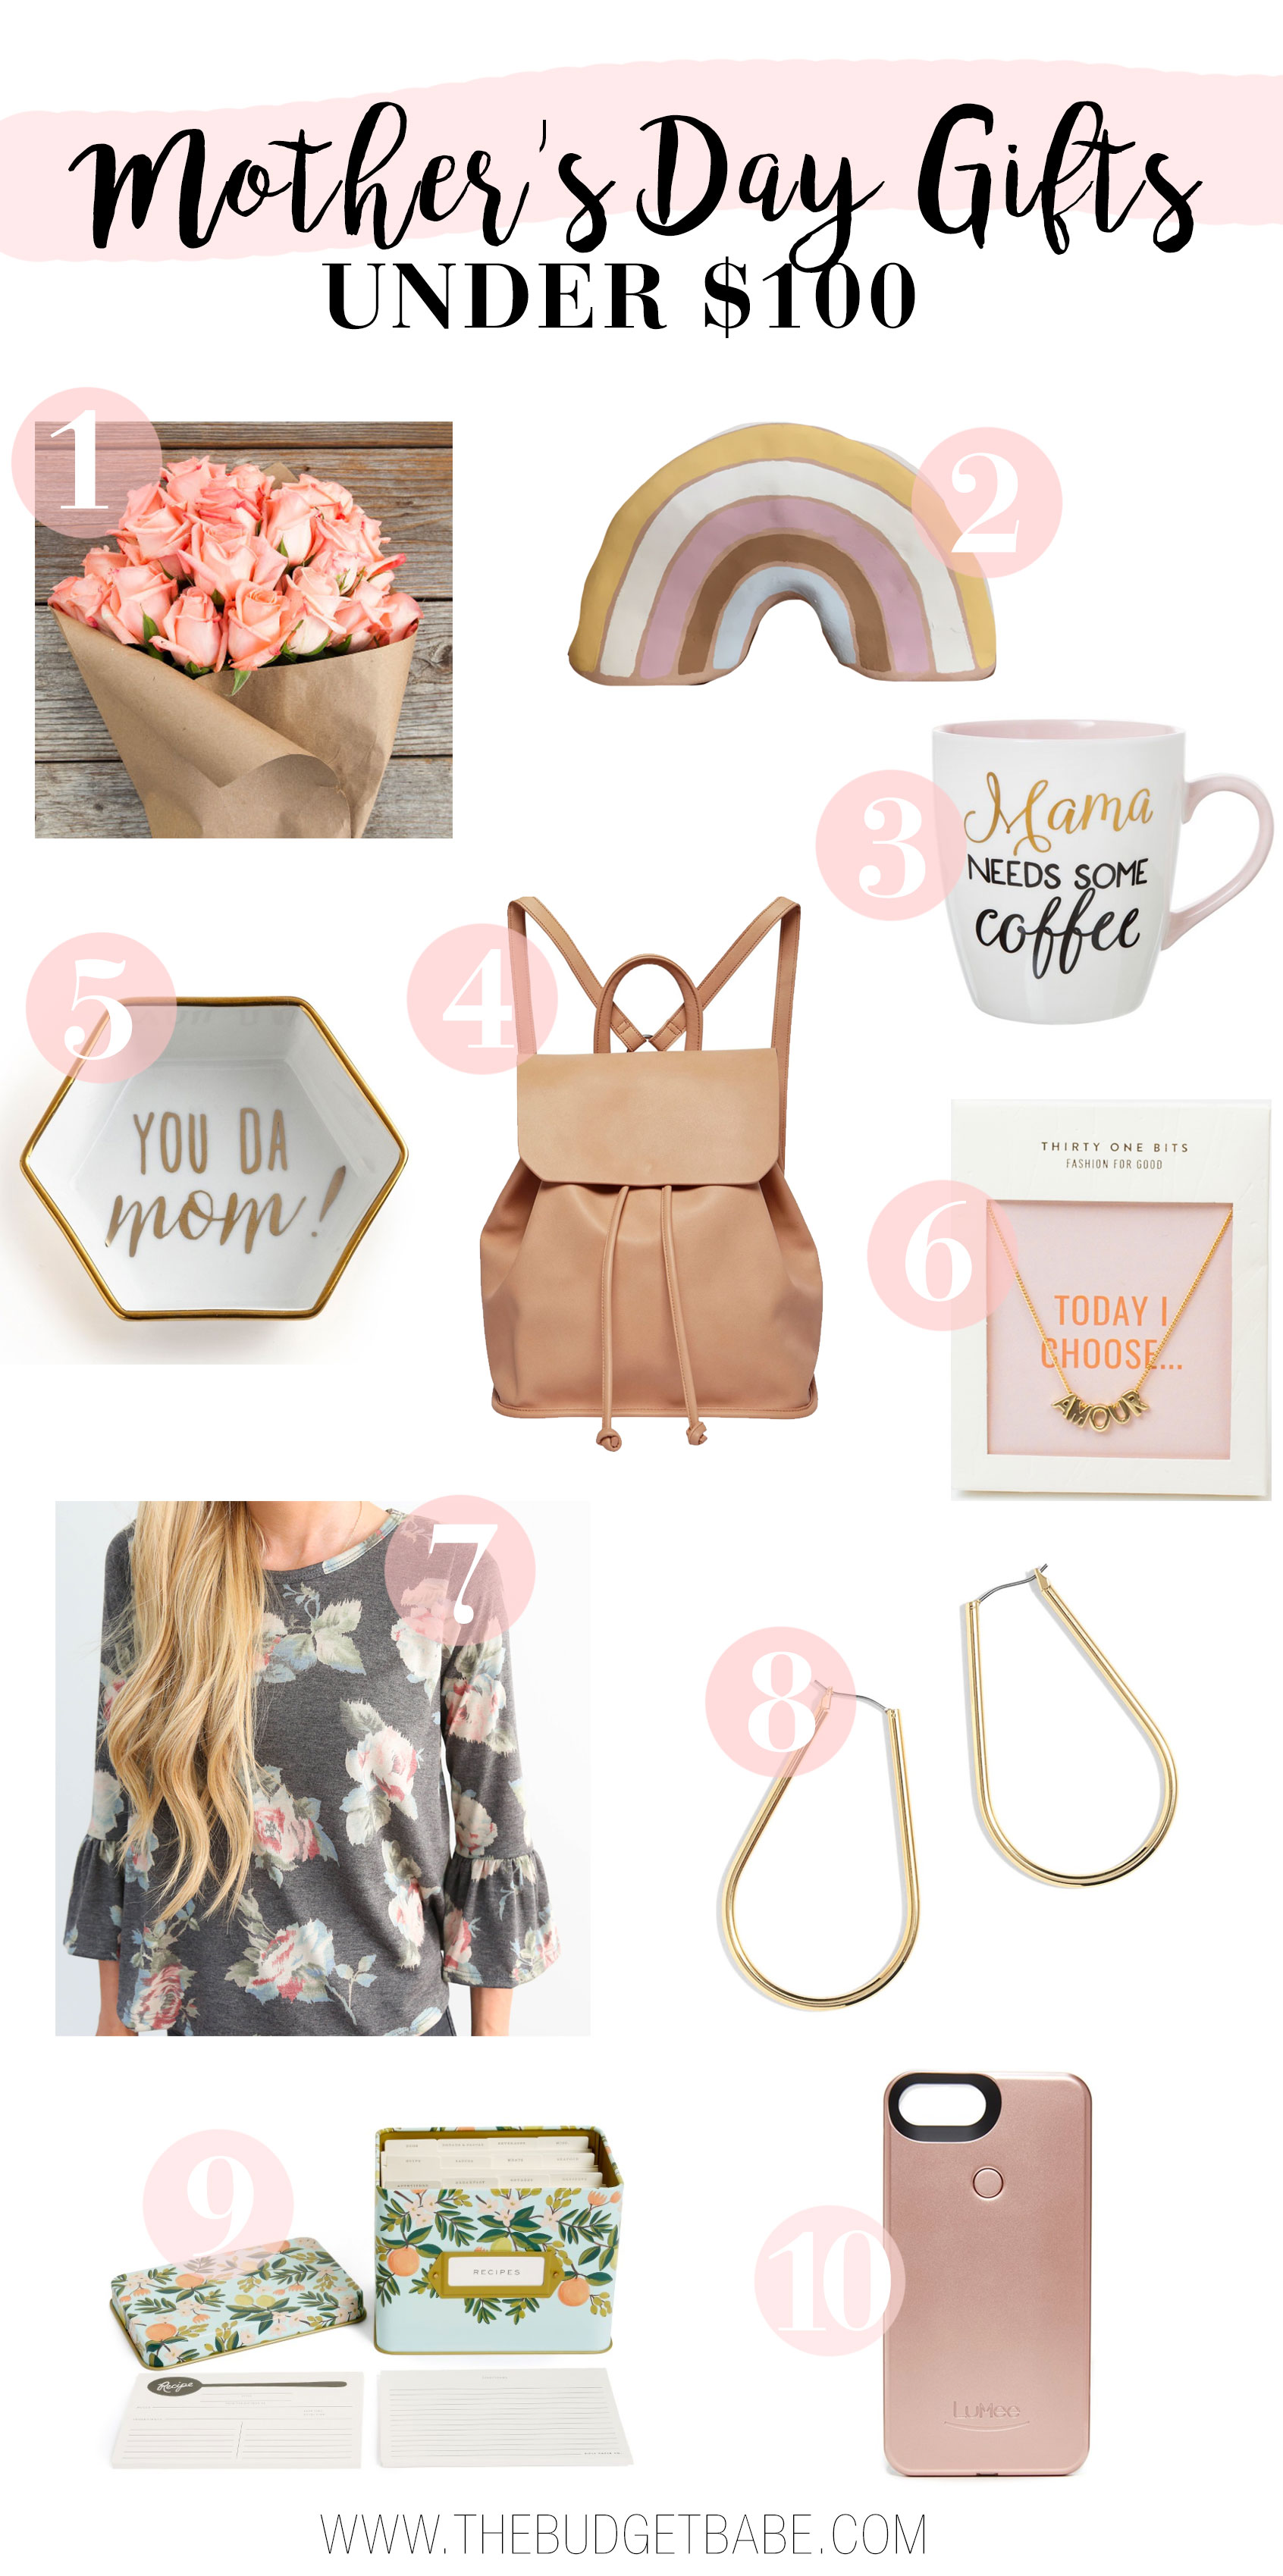 Looking for the perfect Mother's Day gift? Fashion blogger Dianna Baros puts together the perfect guide with finds from just $5.99.